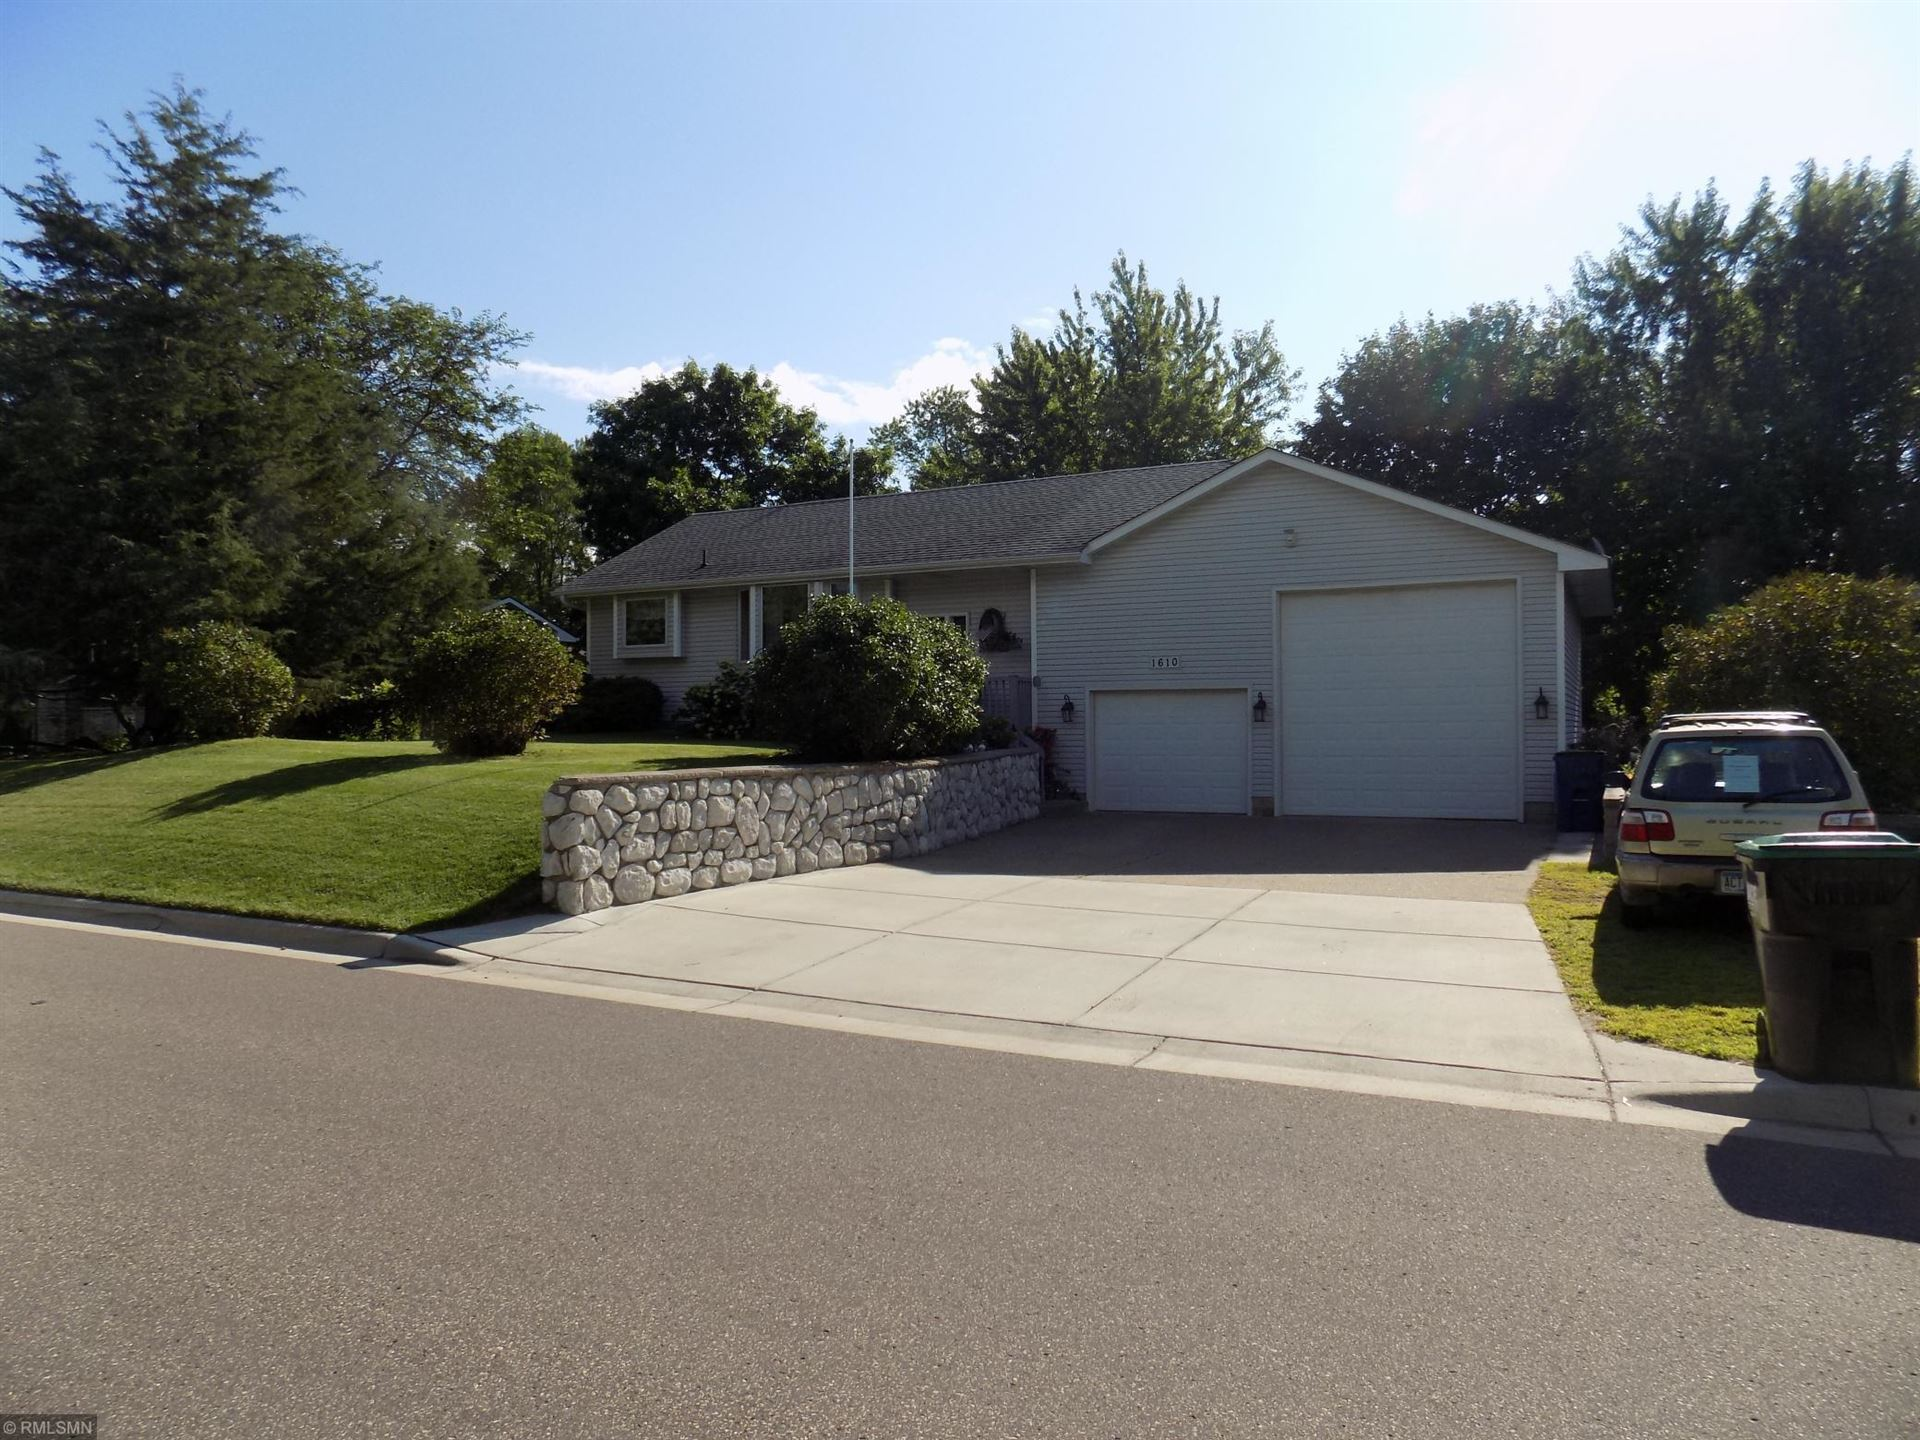 1610 10th Avenue, Anoka, MN 55303 - MLS#: 5635709